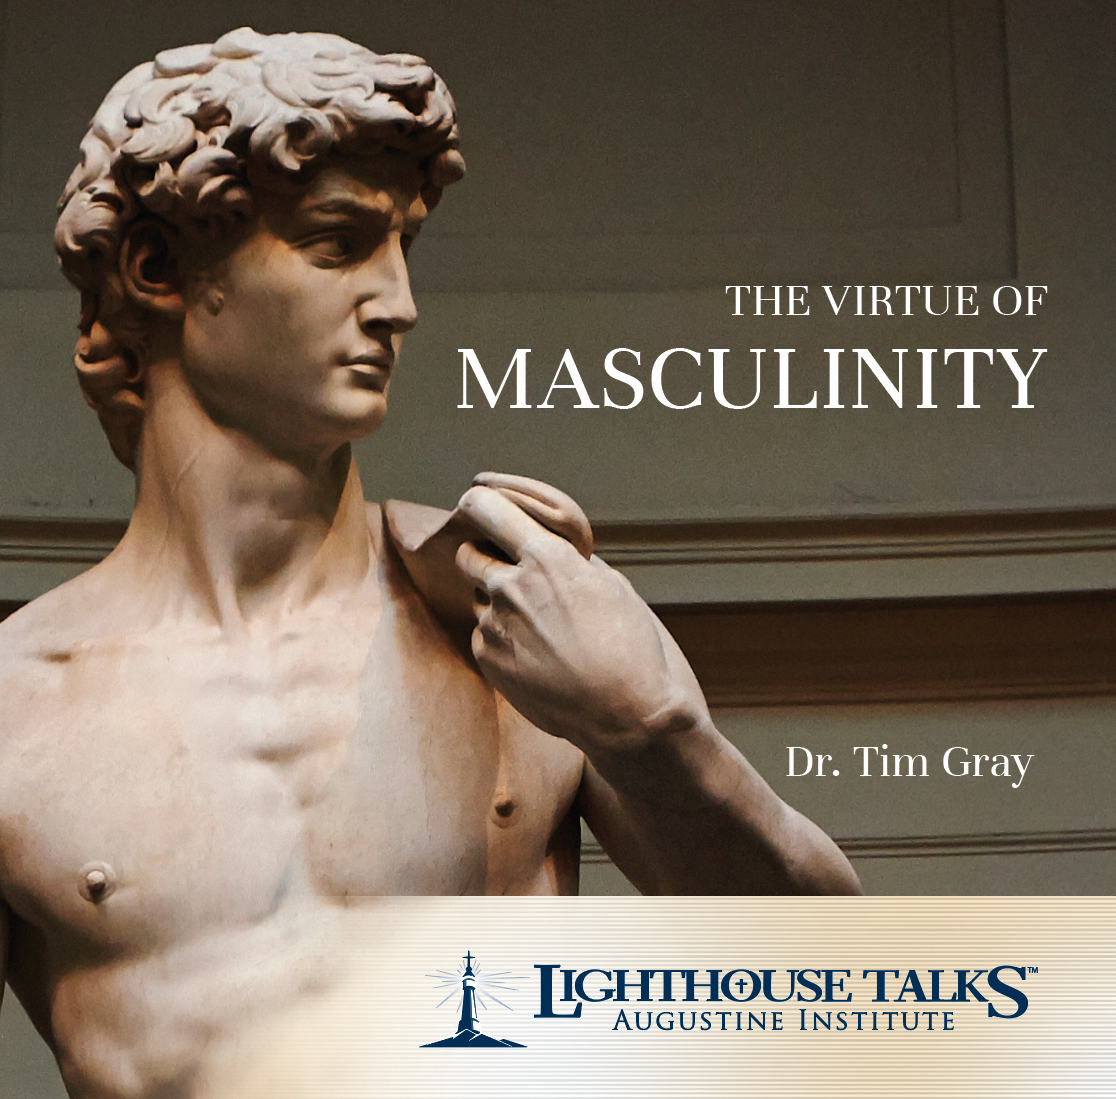 The Virtue of Masculinity